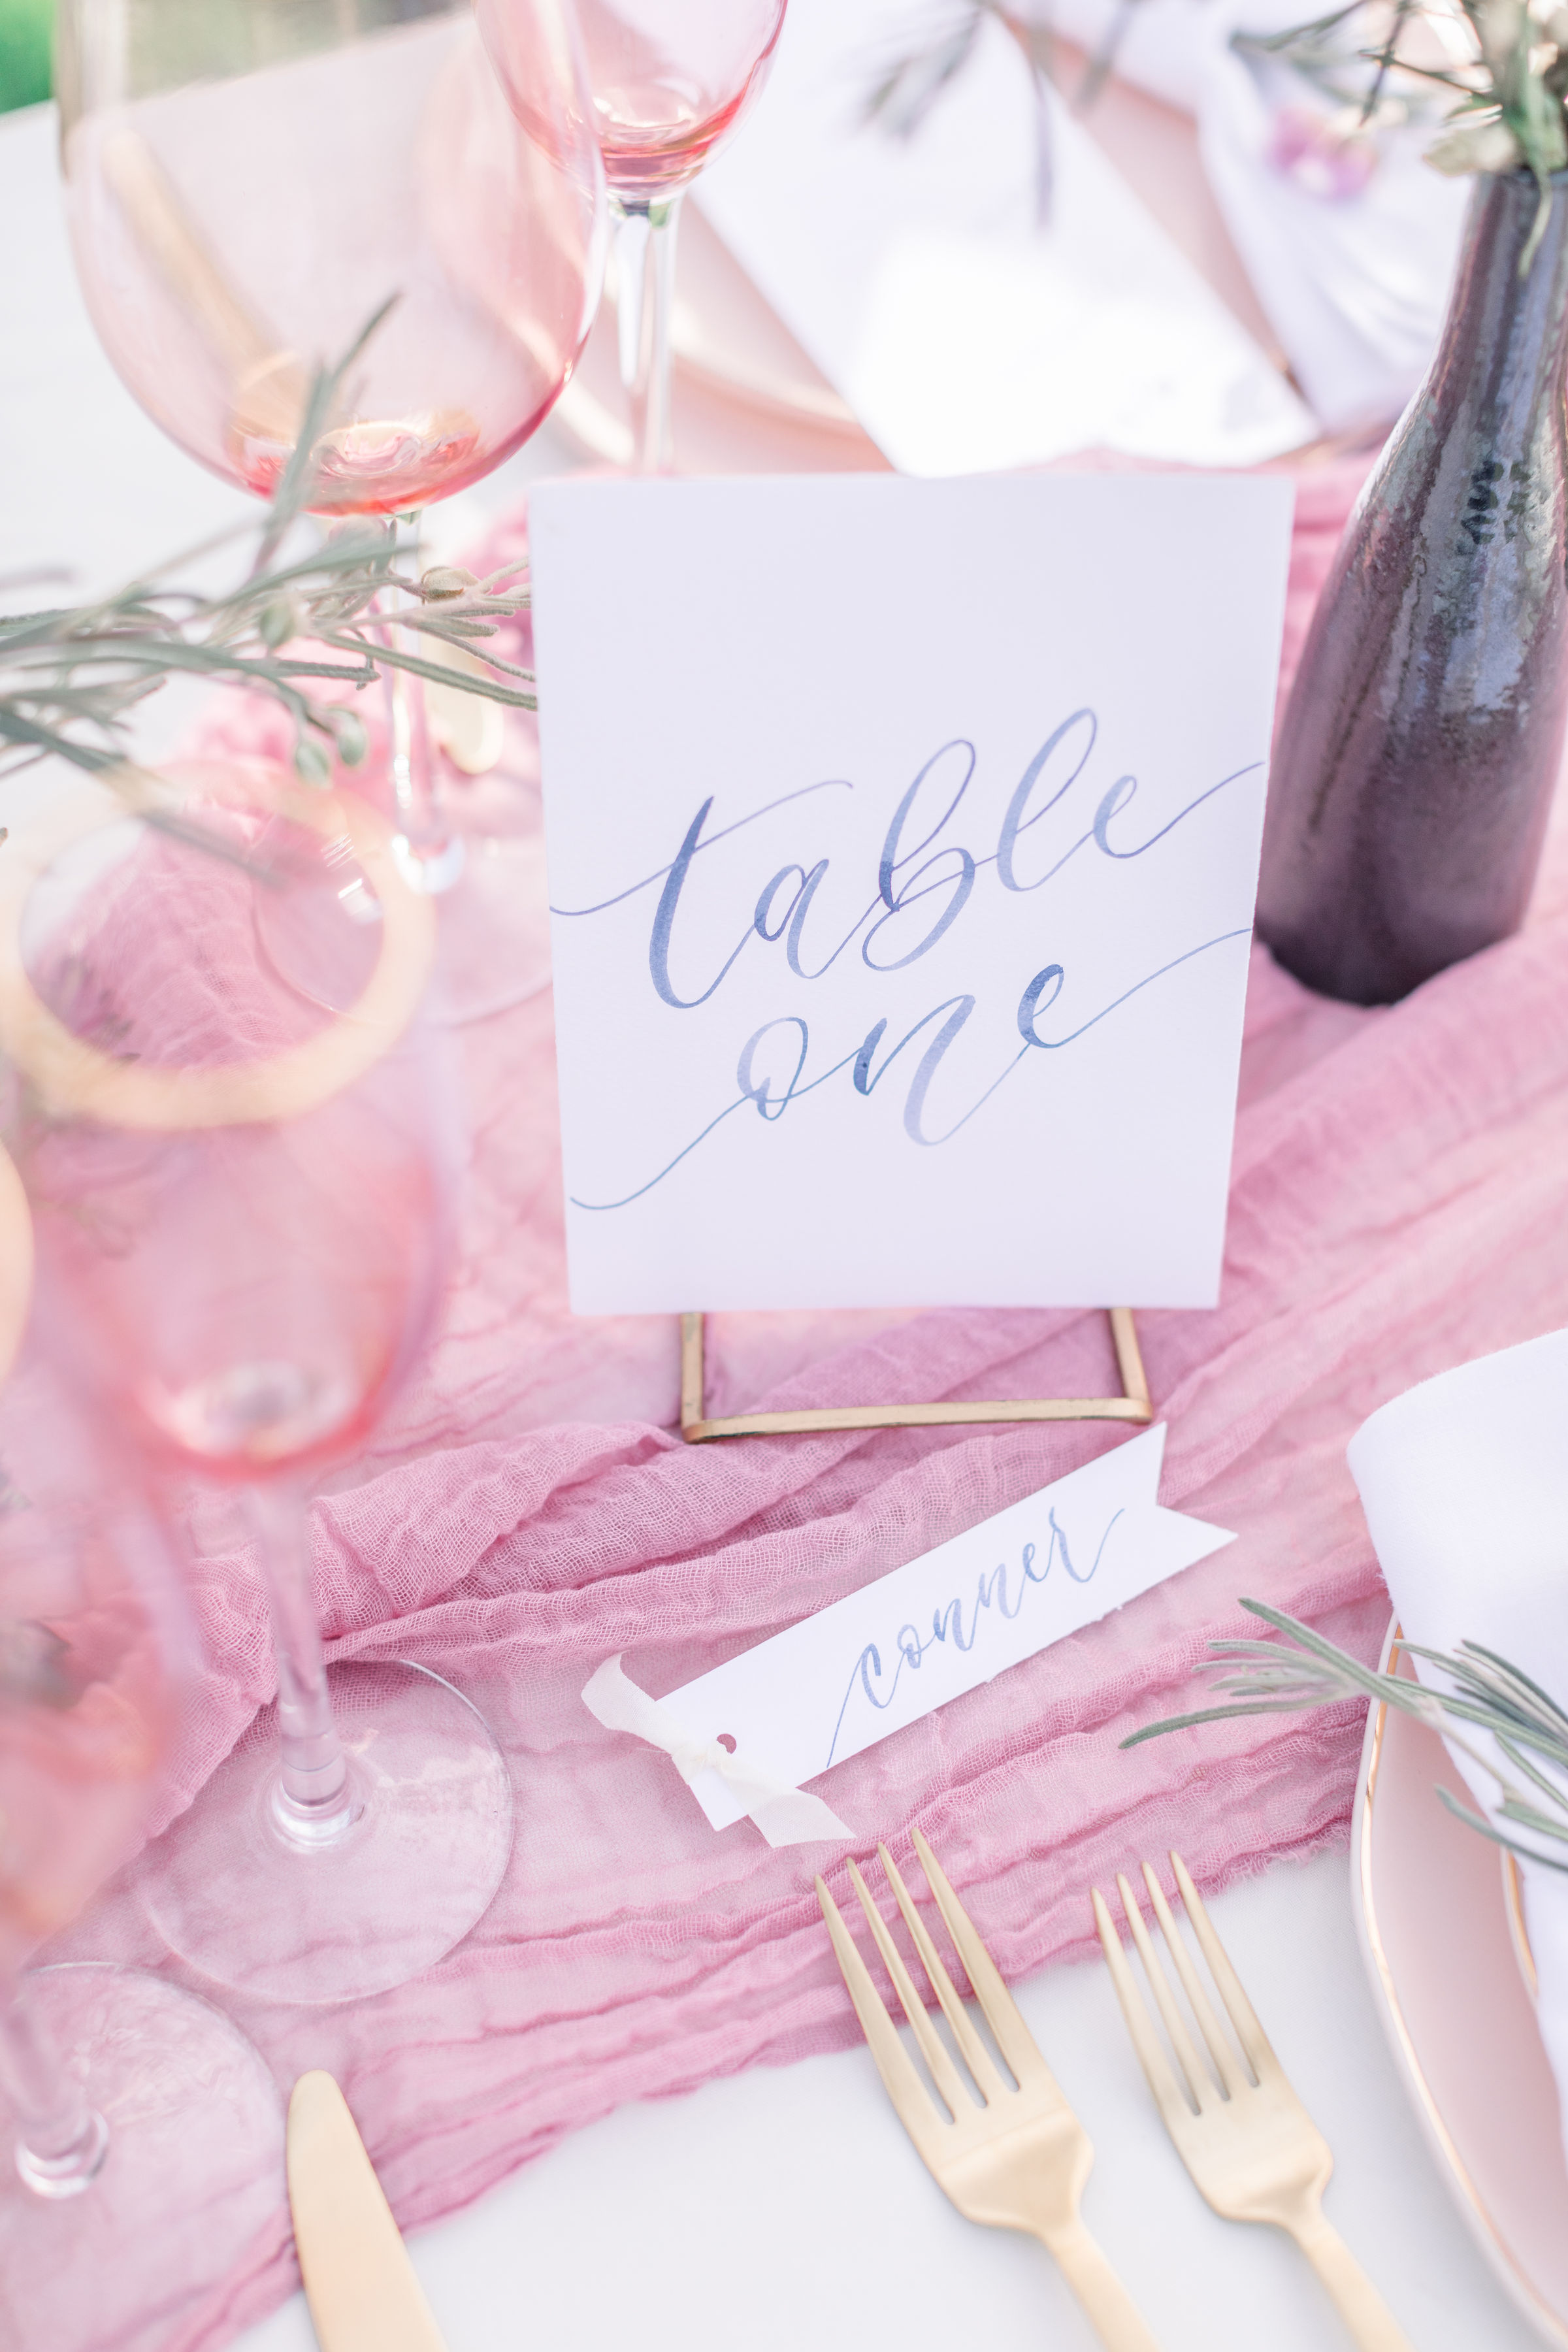 StephanieWeberPhotography-Navy and Pink Wedding Tablescape – Sam Allen Creates Table Number Cards